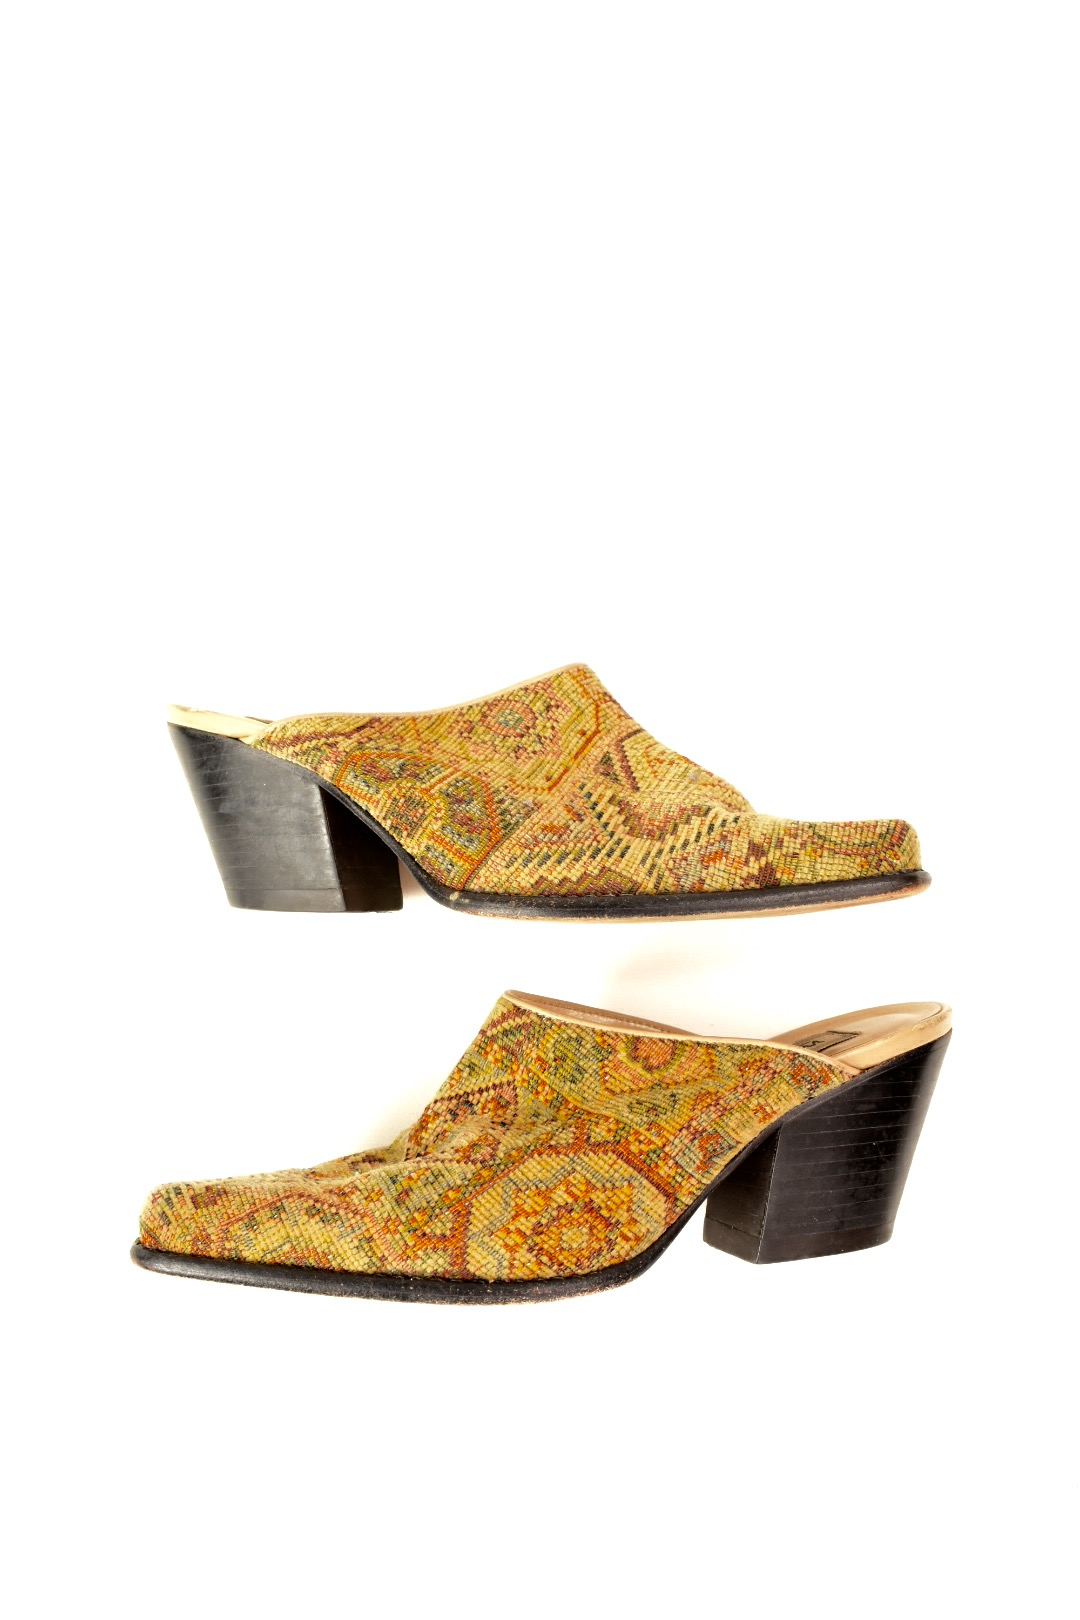 Ladies Girls Slippers Mule Pink Paisley Sizes 3-8 Available